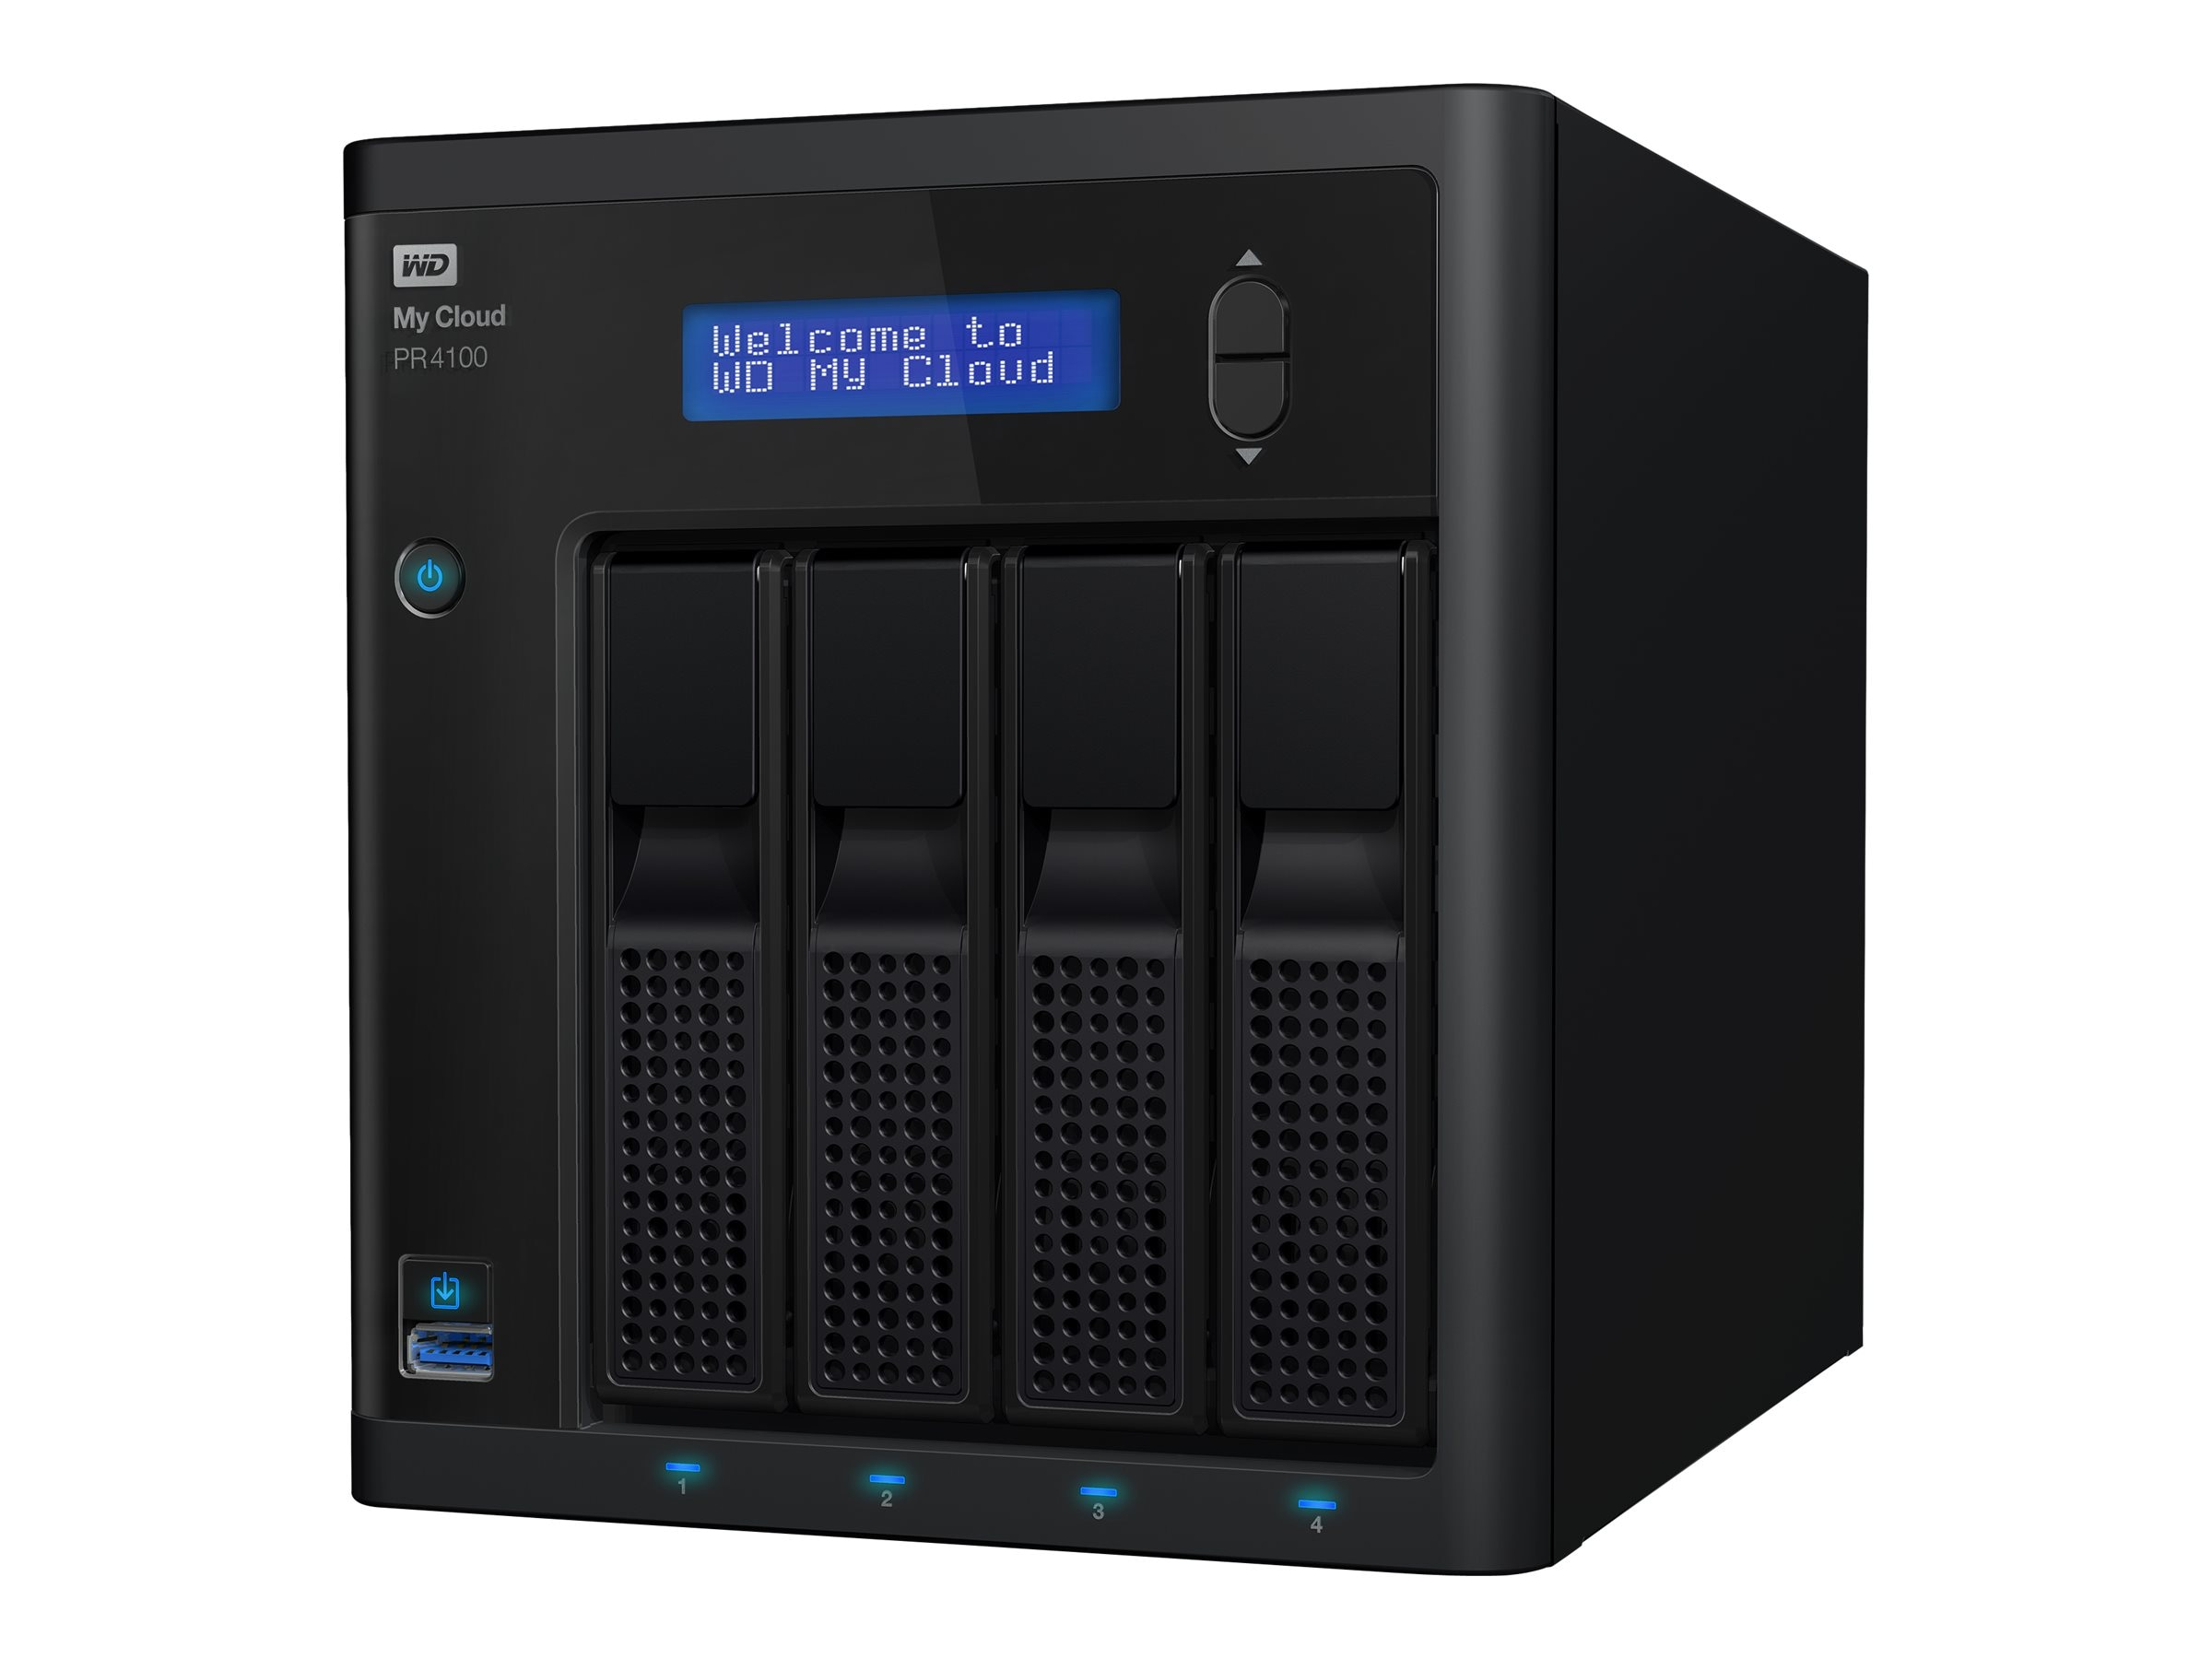 WD My Cloud Pro Series PR4100 Storage - Diskless